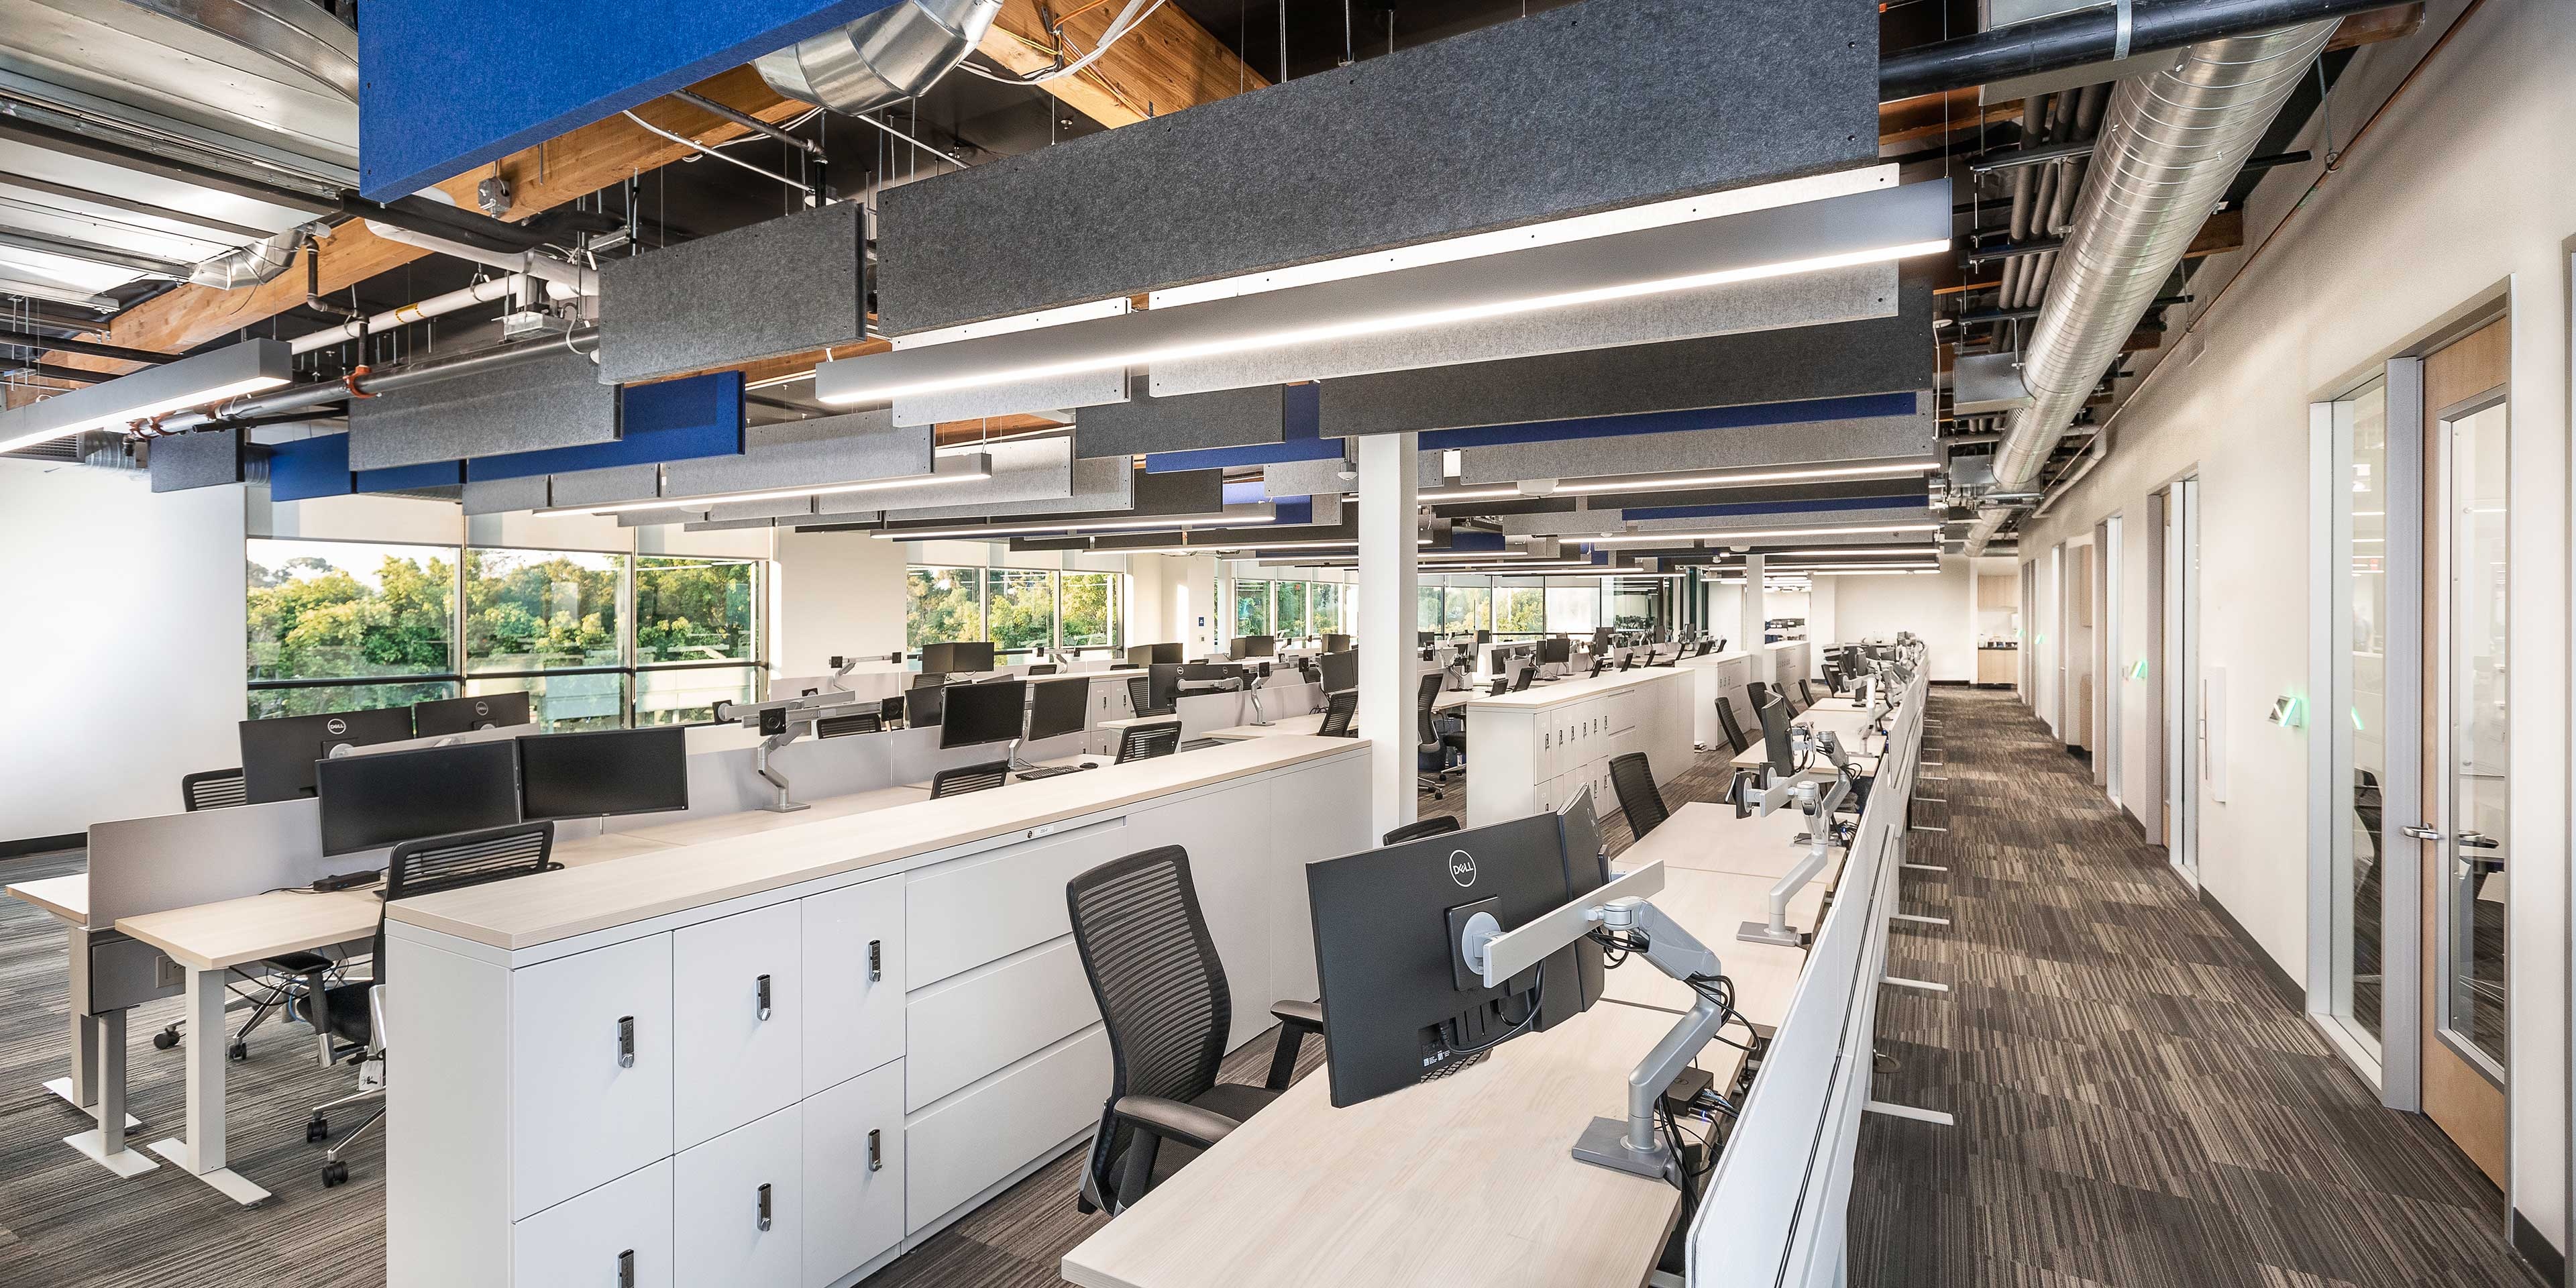 Office space in Abzena's new San Diego biopharma manufacturing facility